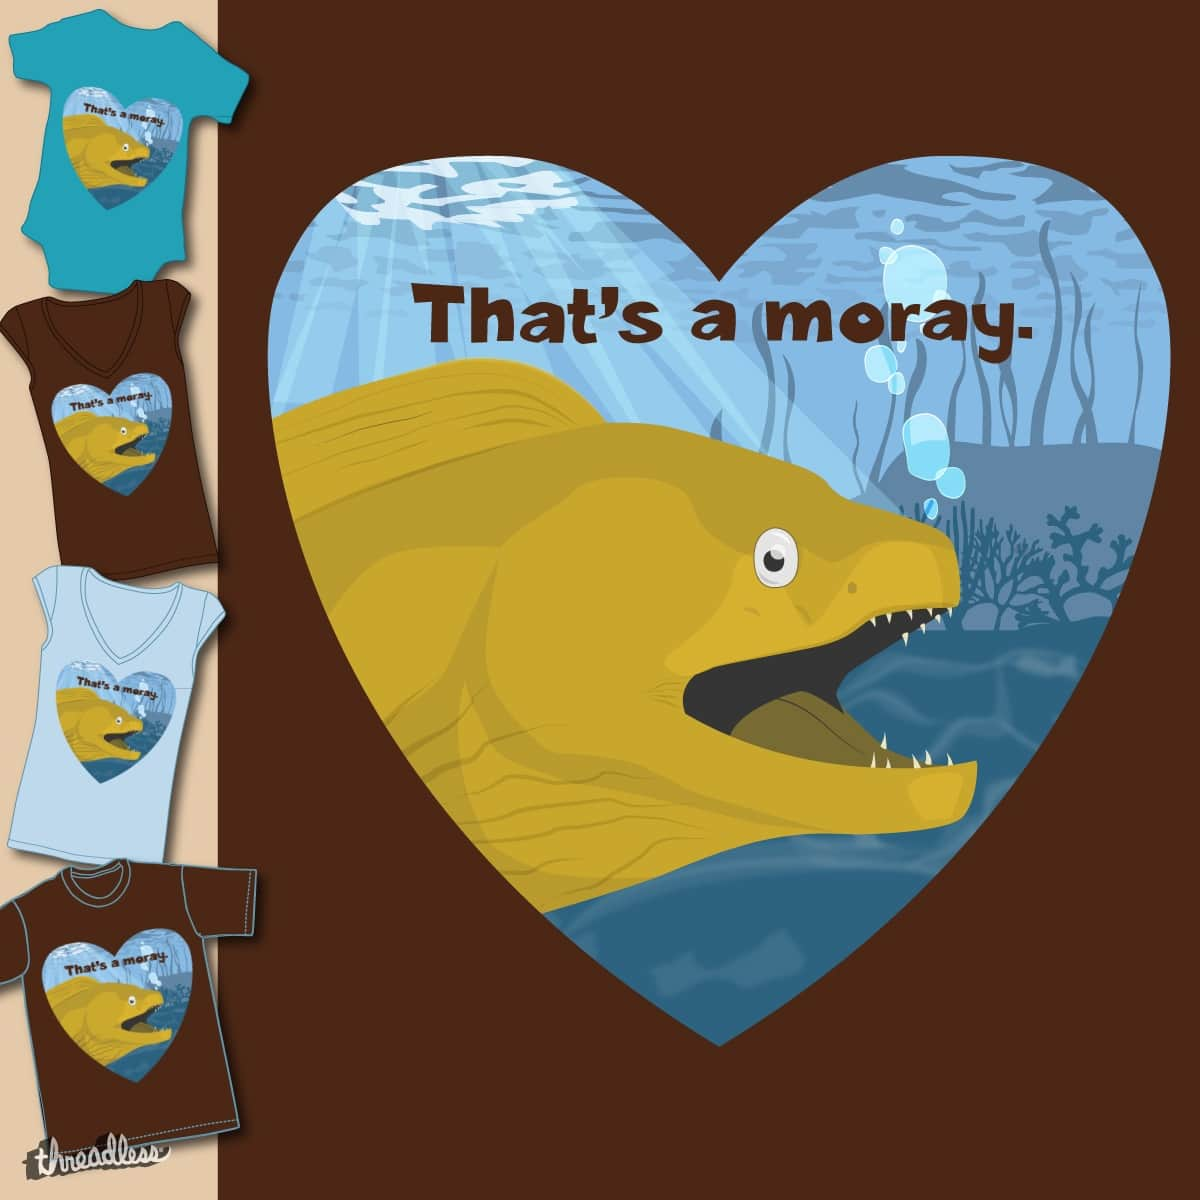 That's a moray by Innovator_Gator on Threadless